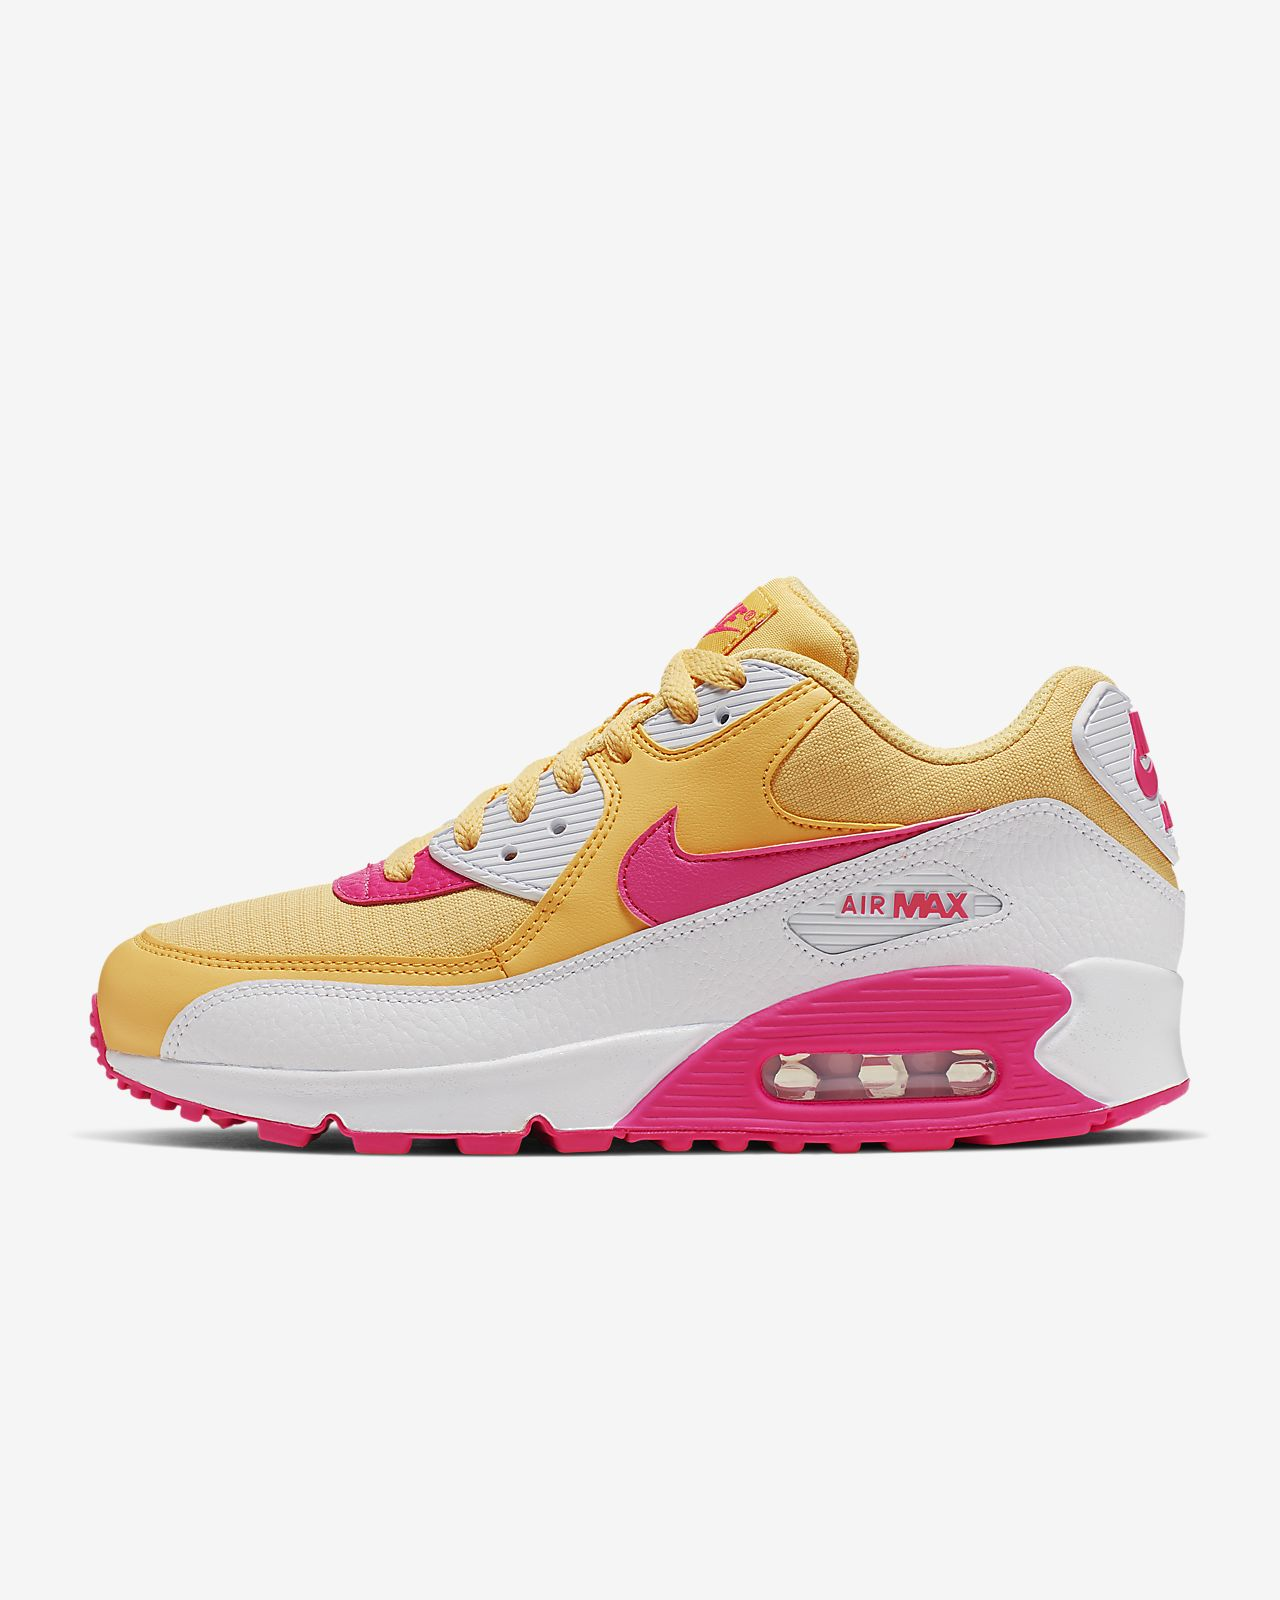 super popular 8aaae c6993 Women s Shoe. Nike Air Max 90